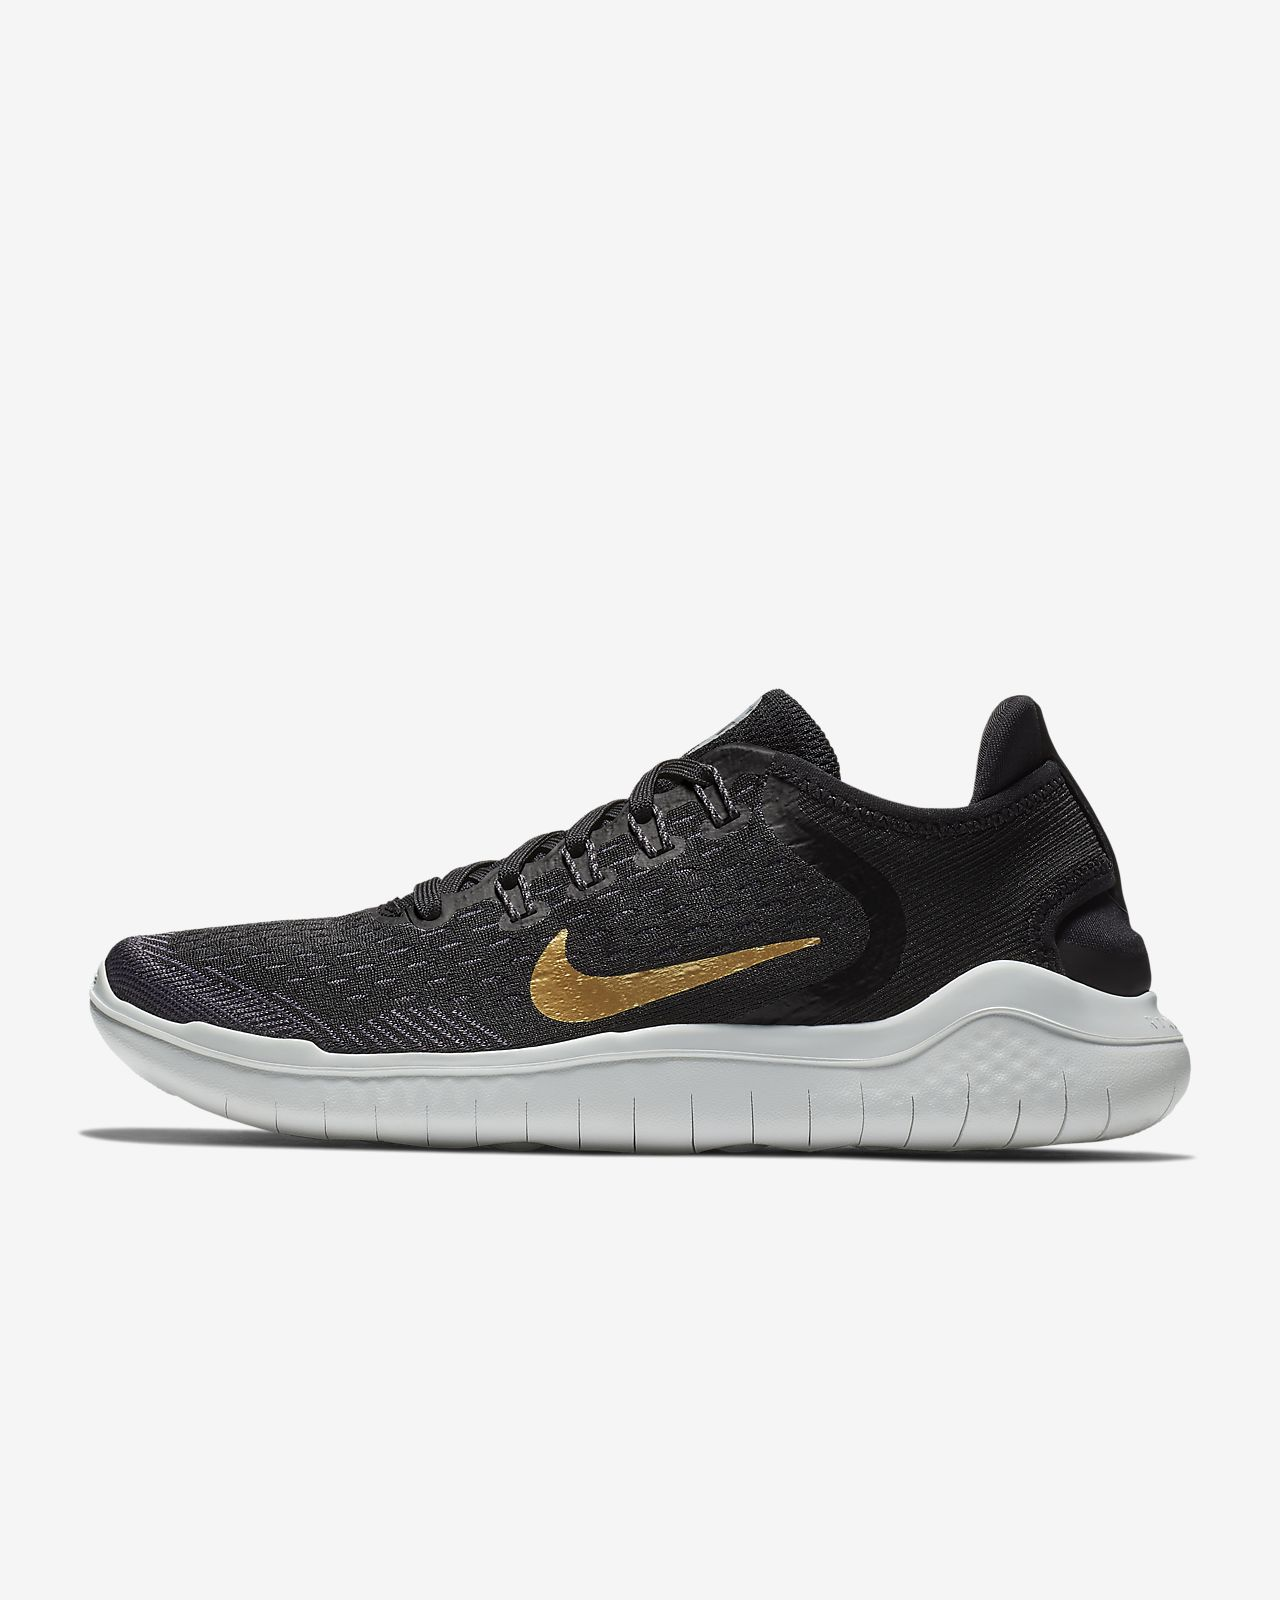 best loved 52ca2 865c8 ... Nike Free RN 2018 Women s Running Shoe